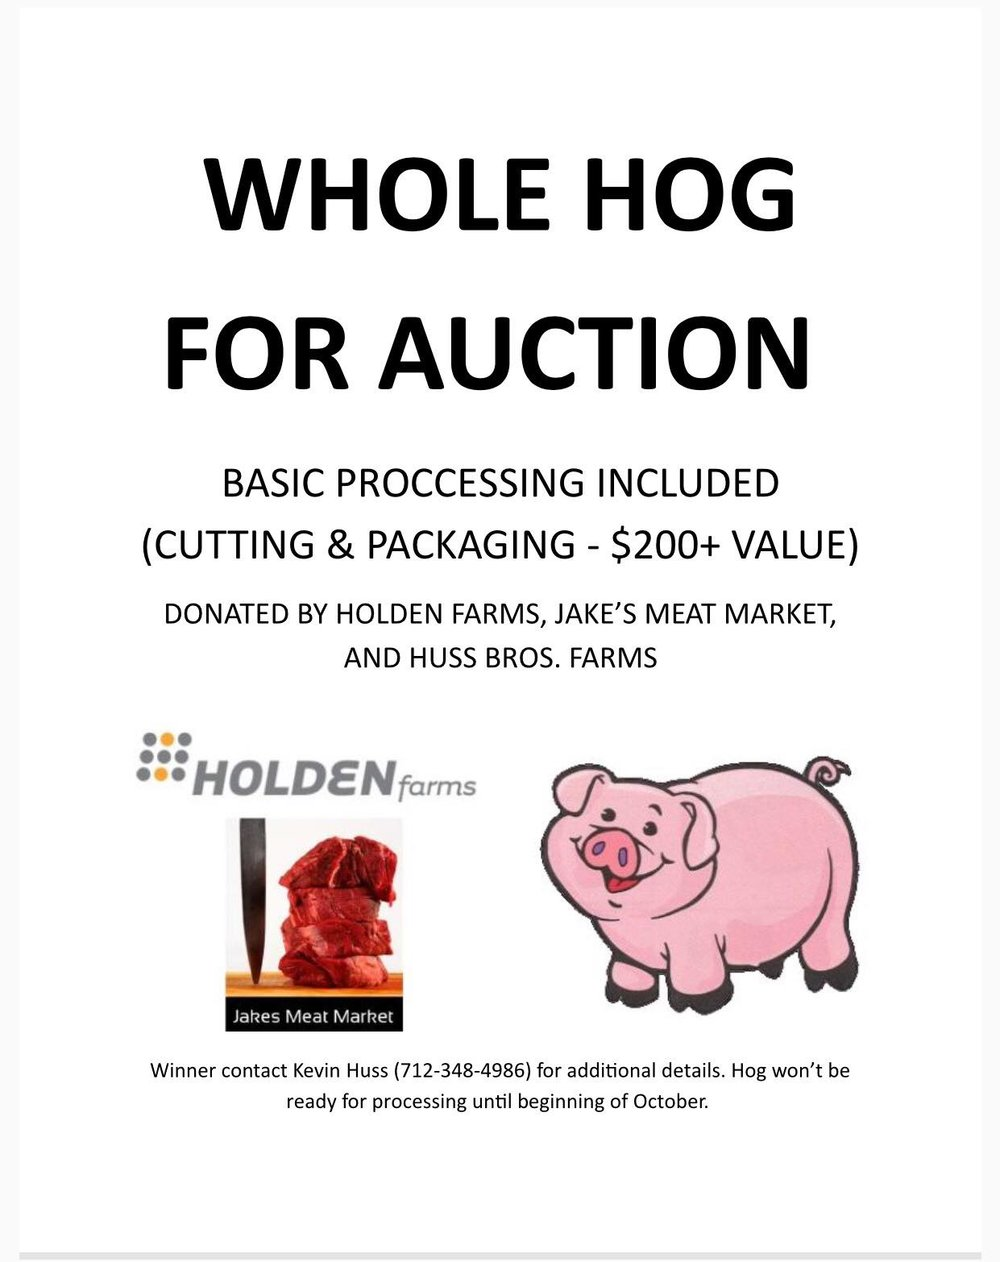 Whole hog & processing